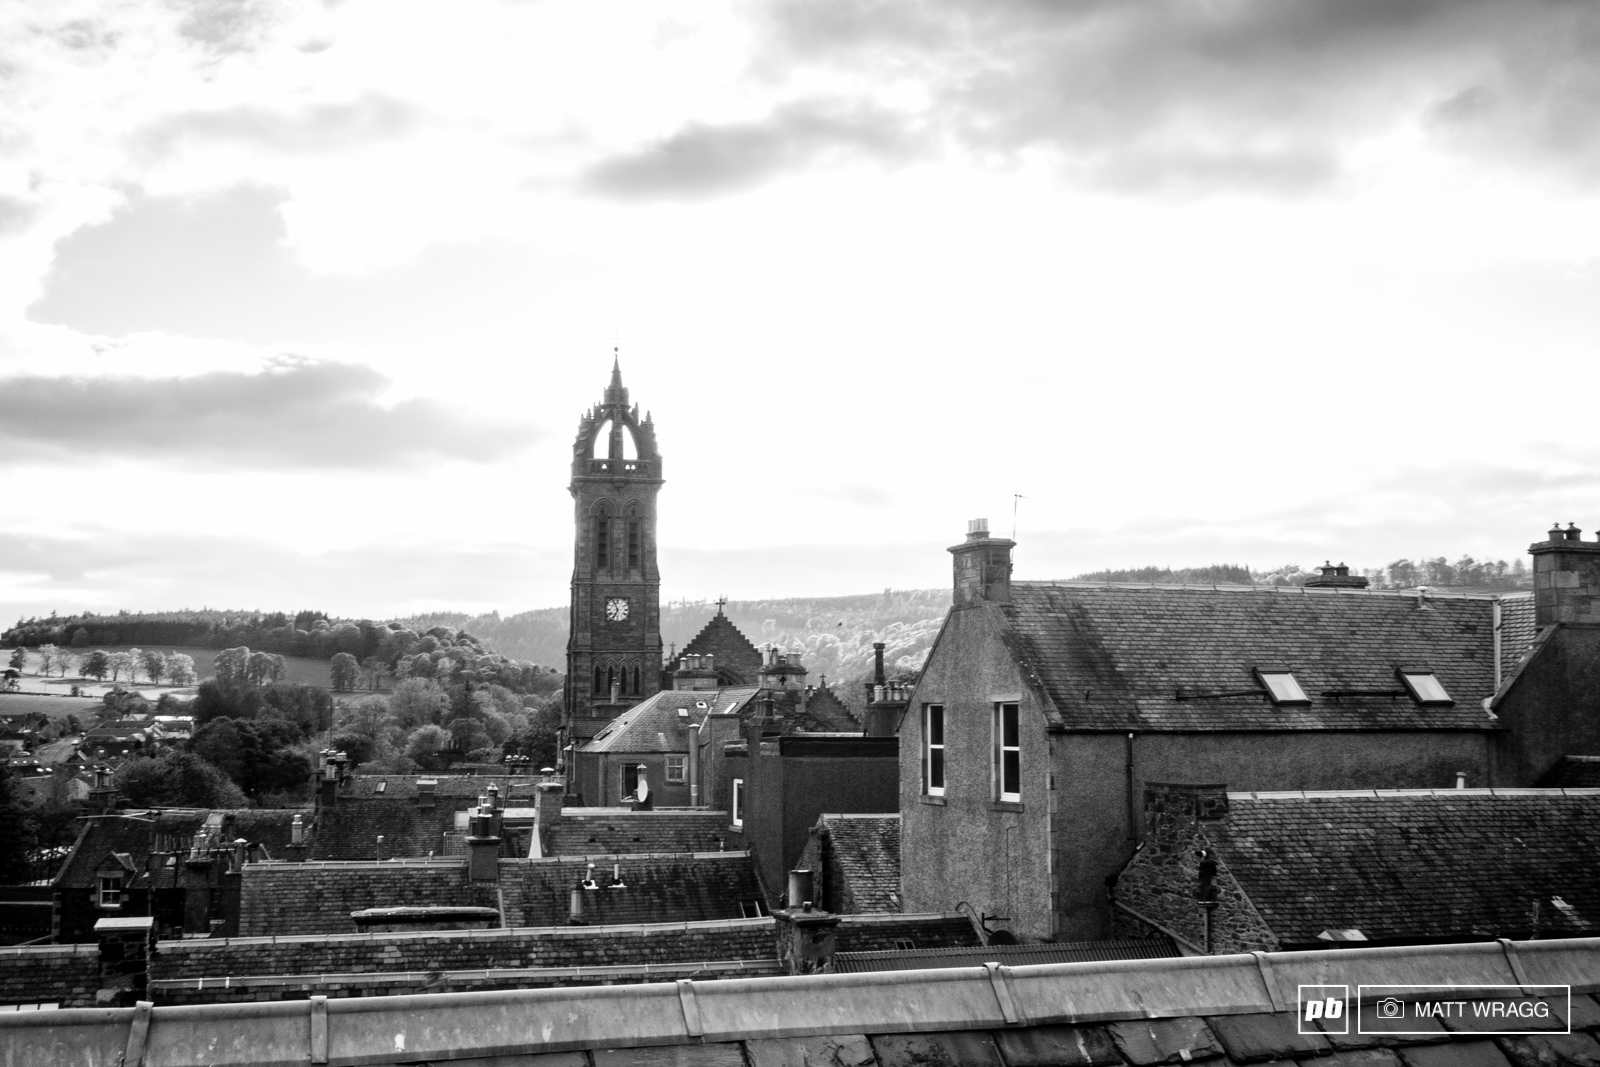 The rooftops of Peebles